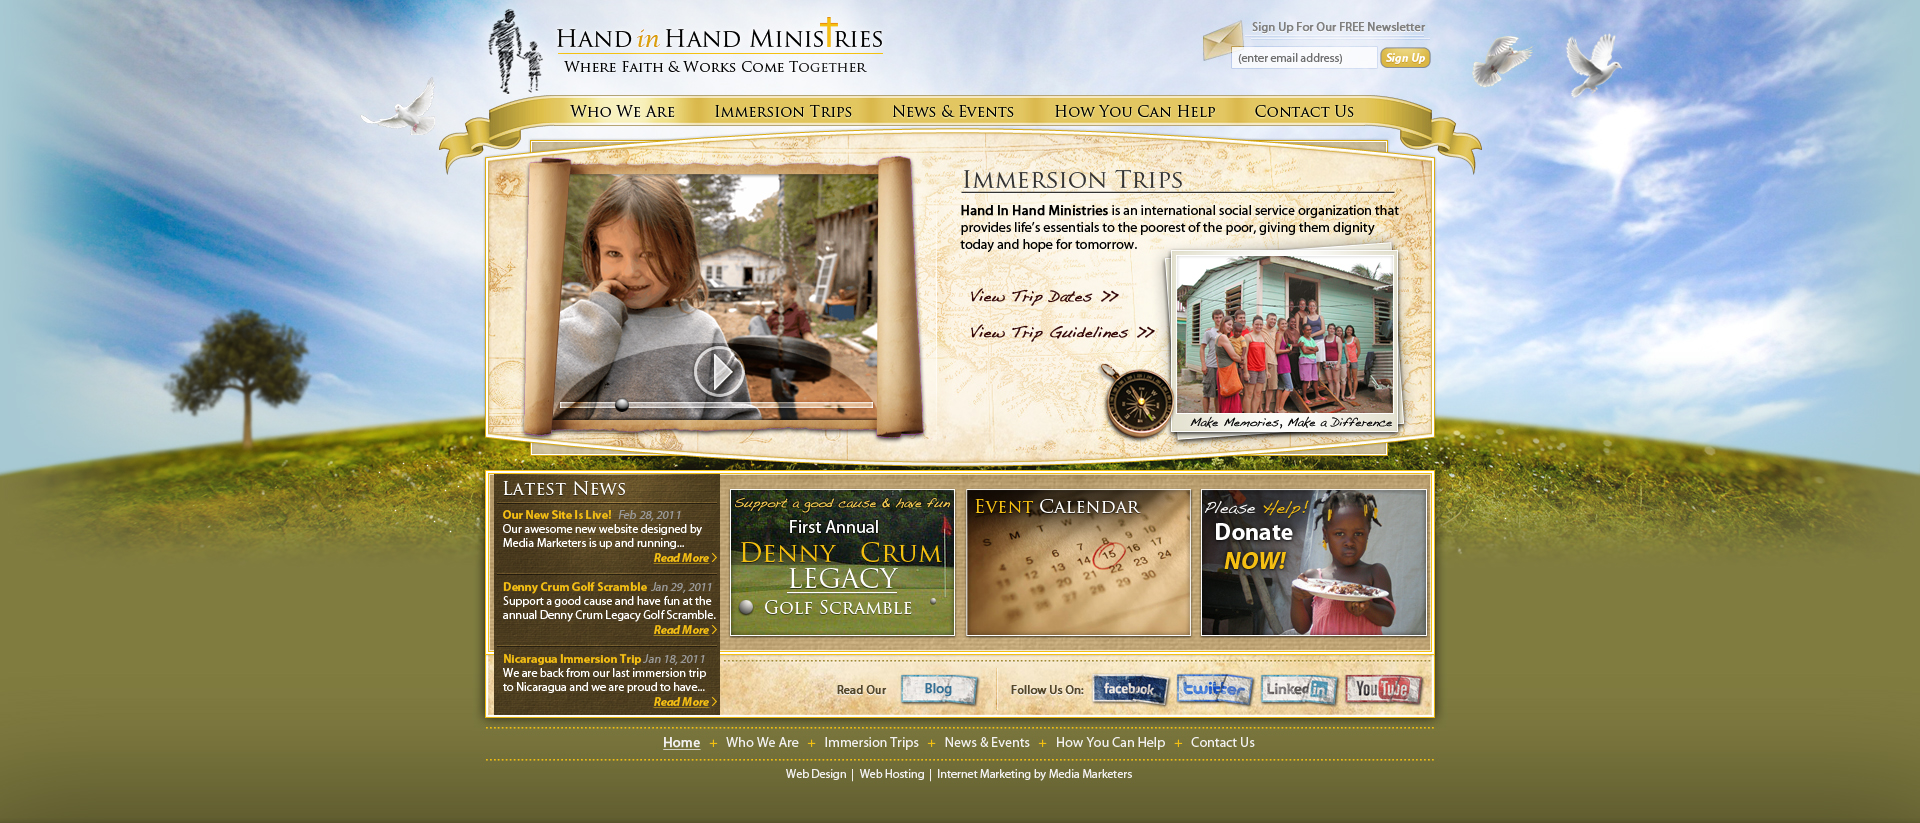 Hand In Hand Ministries design by Stephen-Coelho